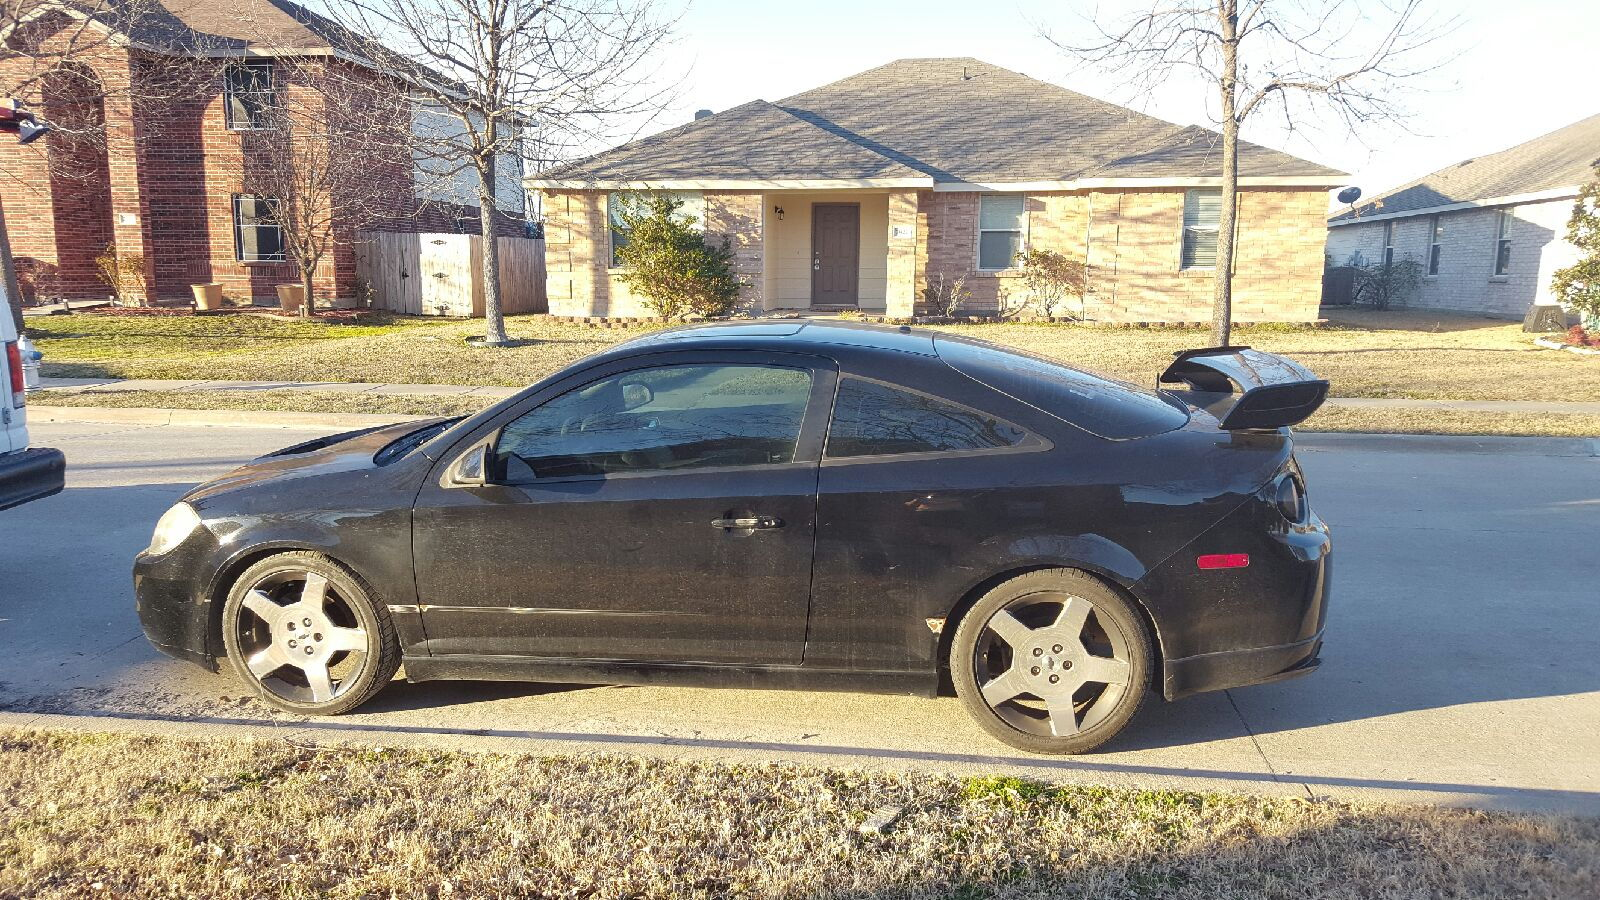 For Sale 2007 Cobalt ss Supercharged with aftermarket parts - Cobalt